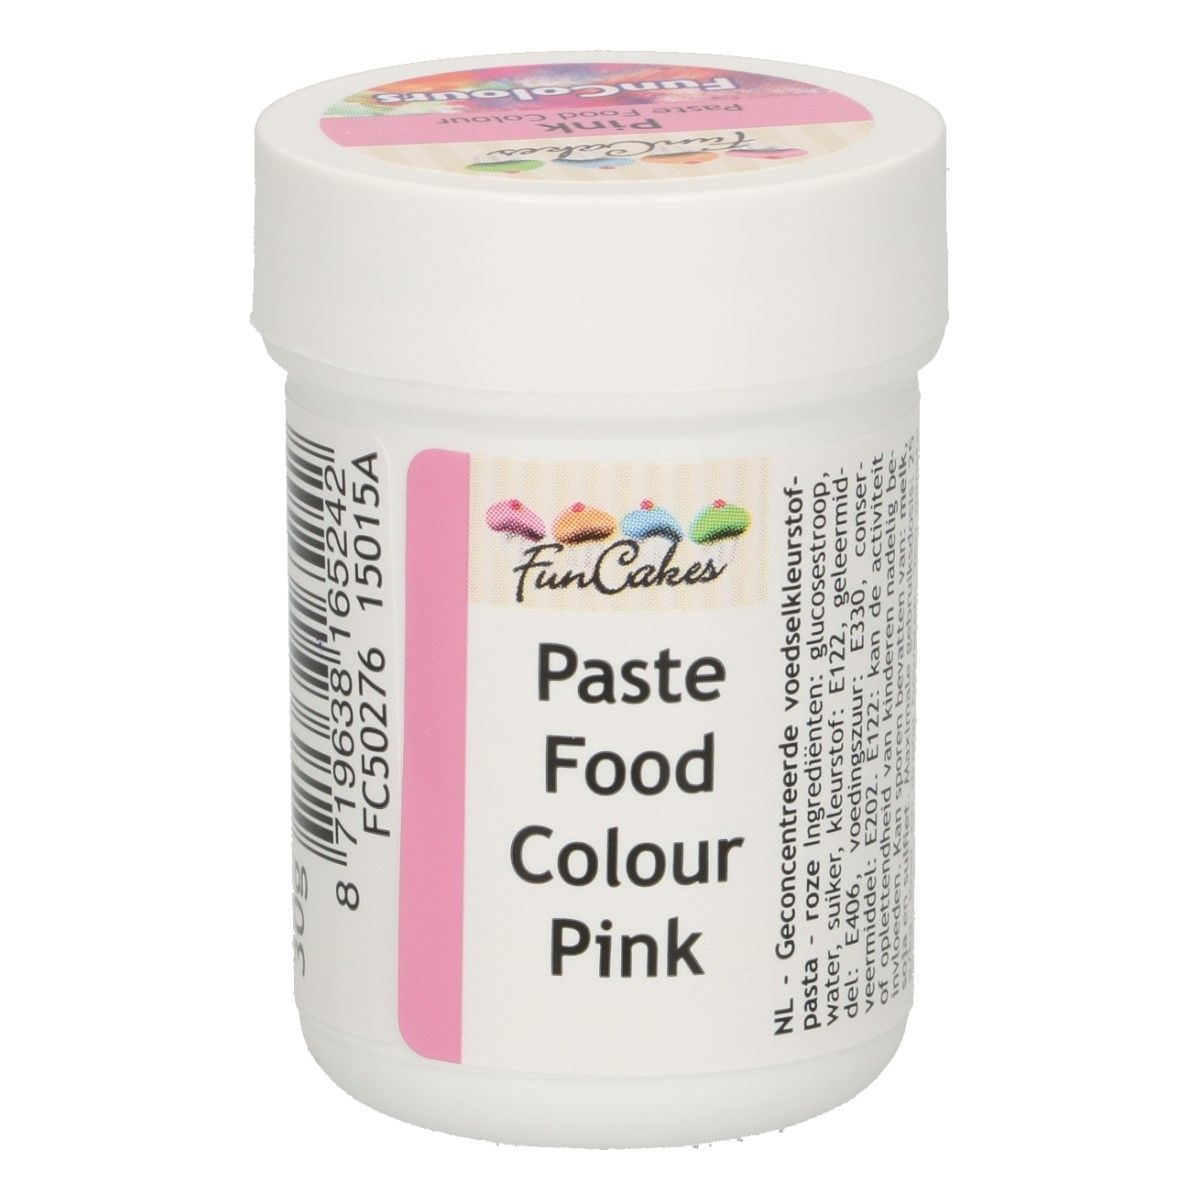 /f/u/funcakes_funcolours_paste_food_colour_pink.jpg